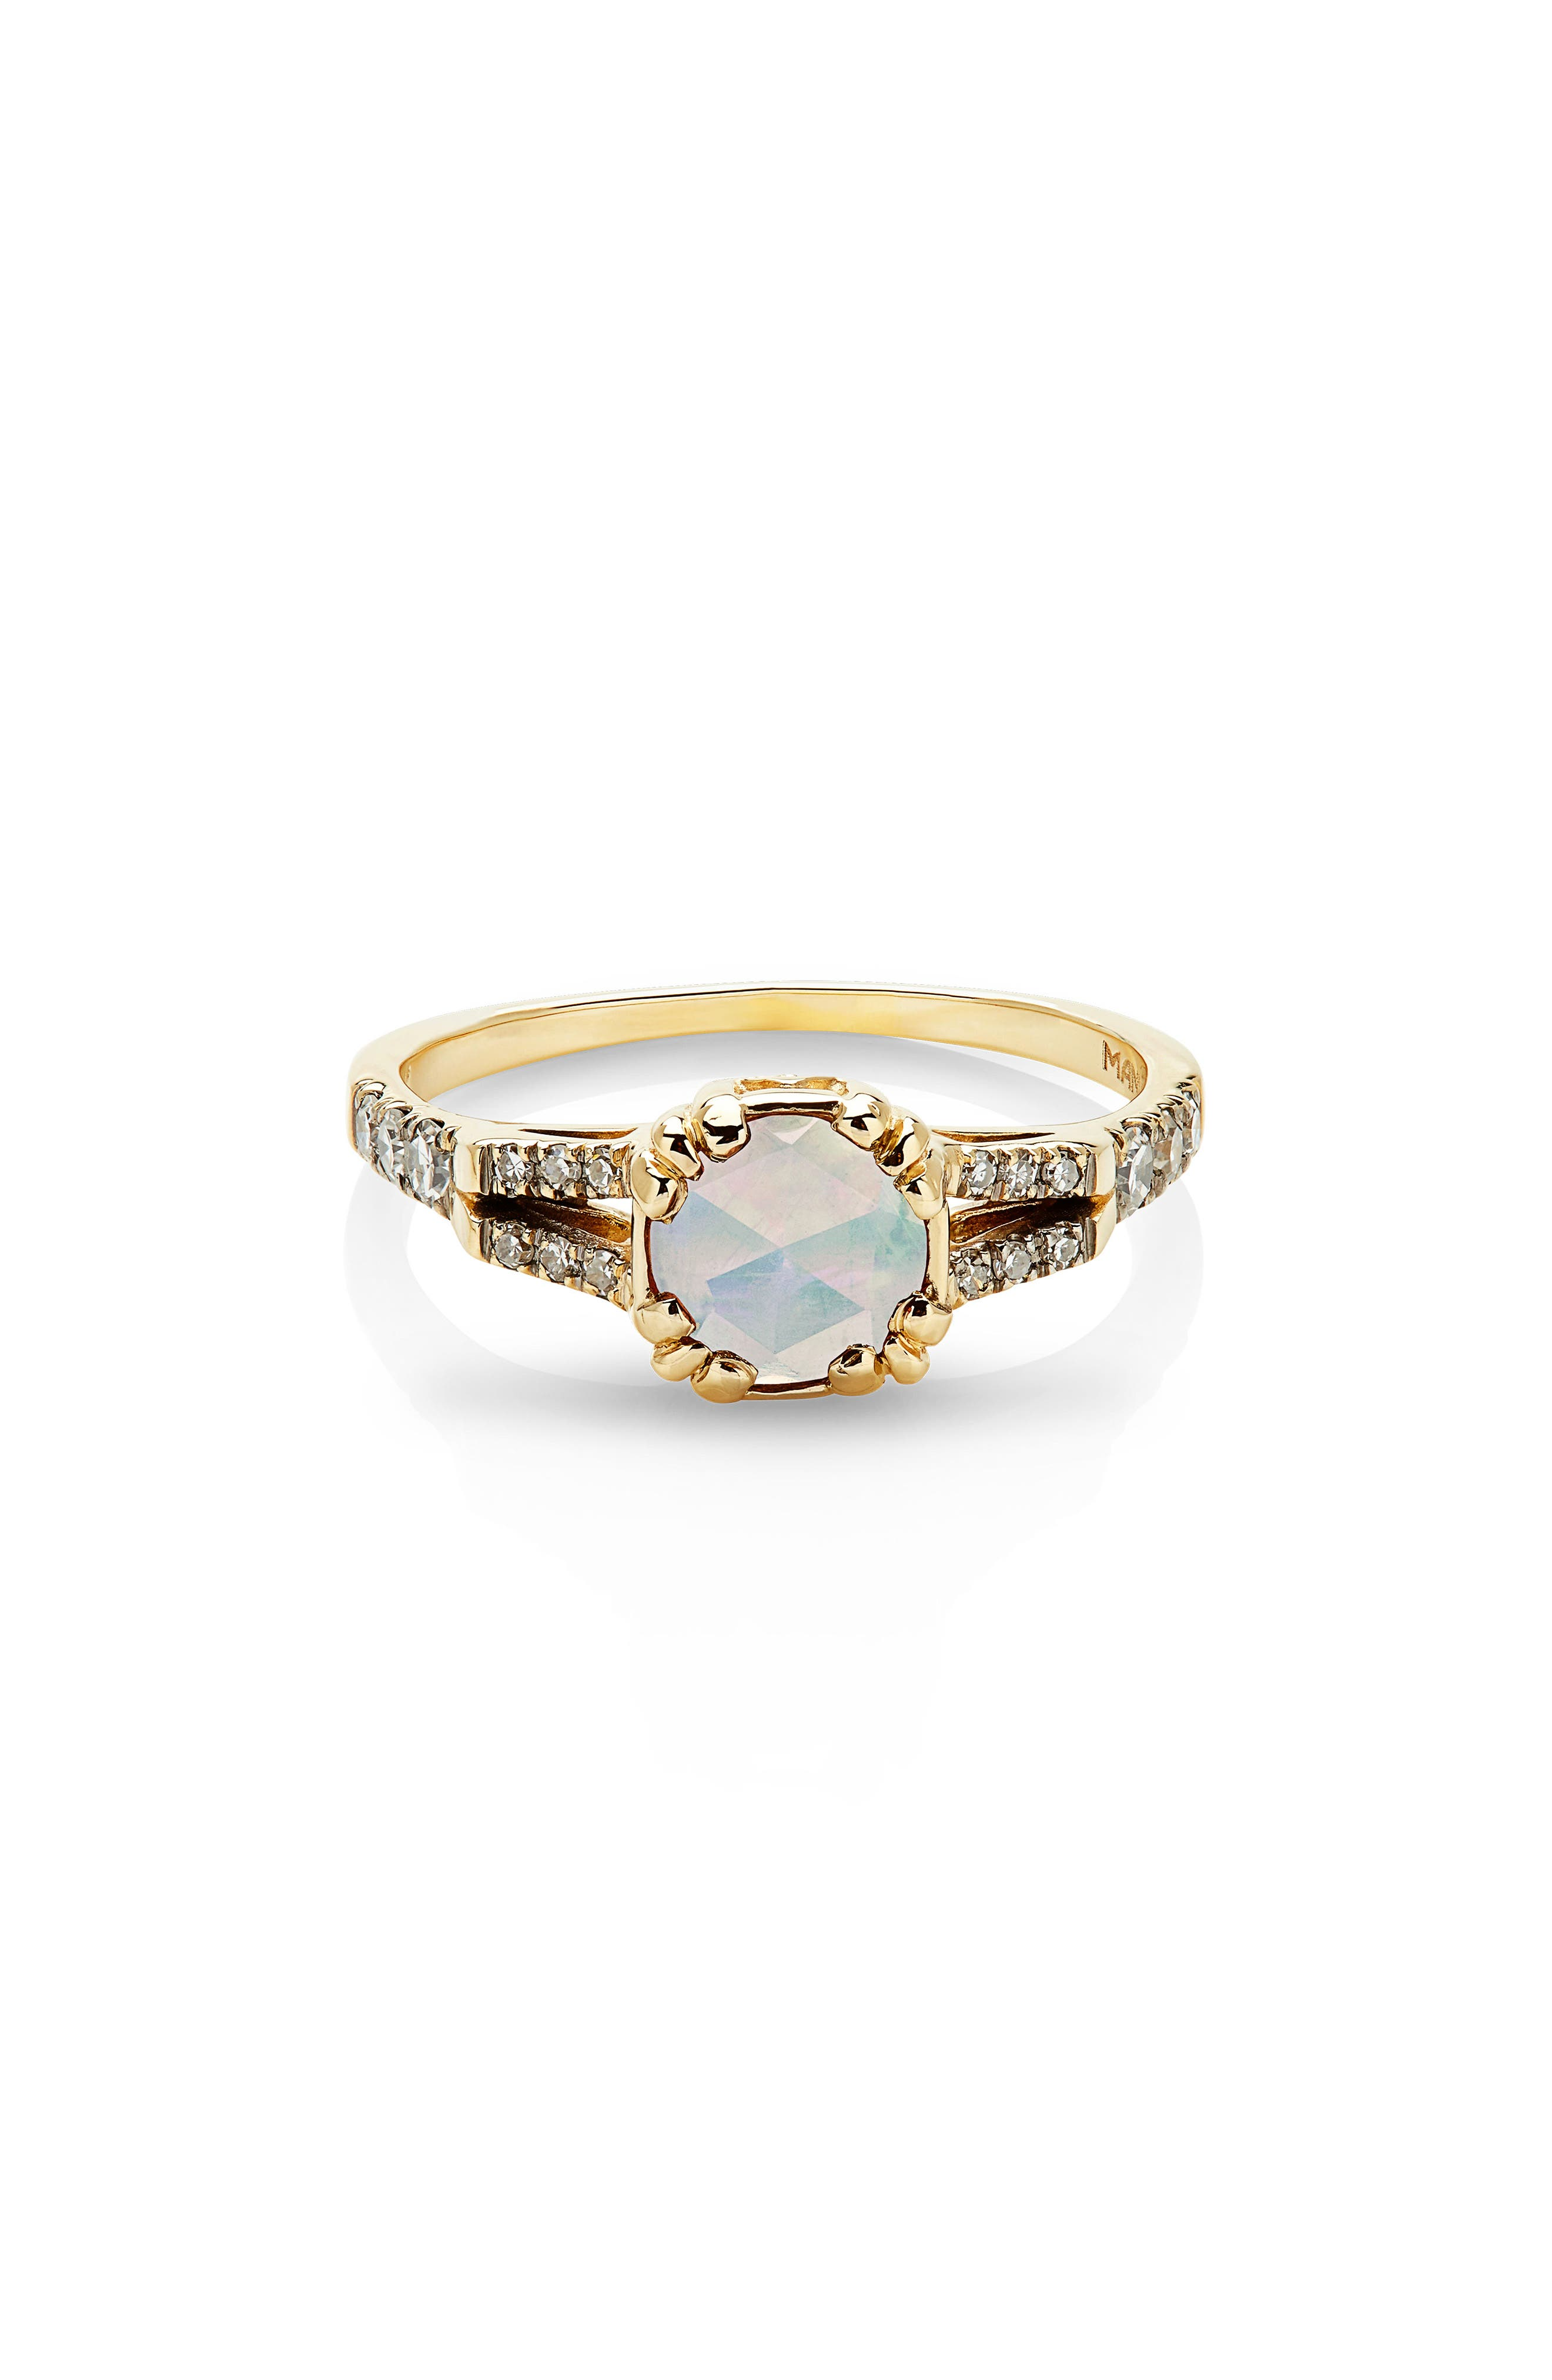 Beloved Solitaire Ring,                             Main thumbnail 1, color,                             Yellow Gold